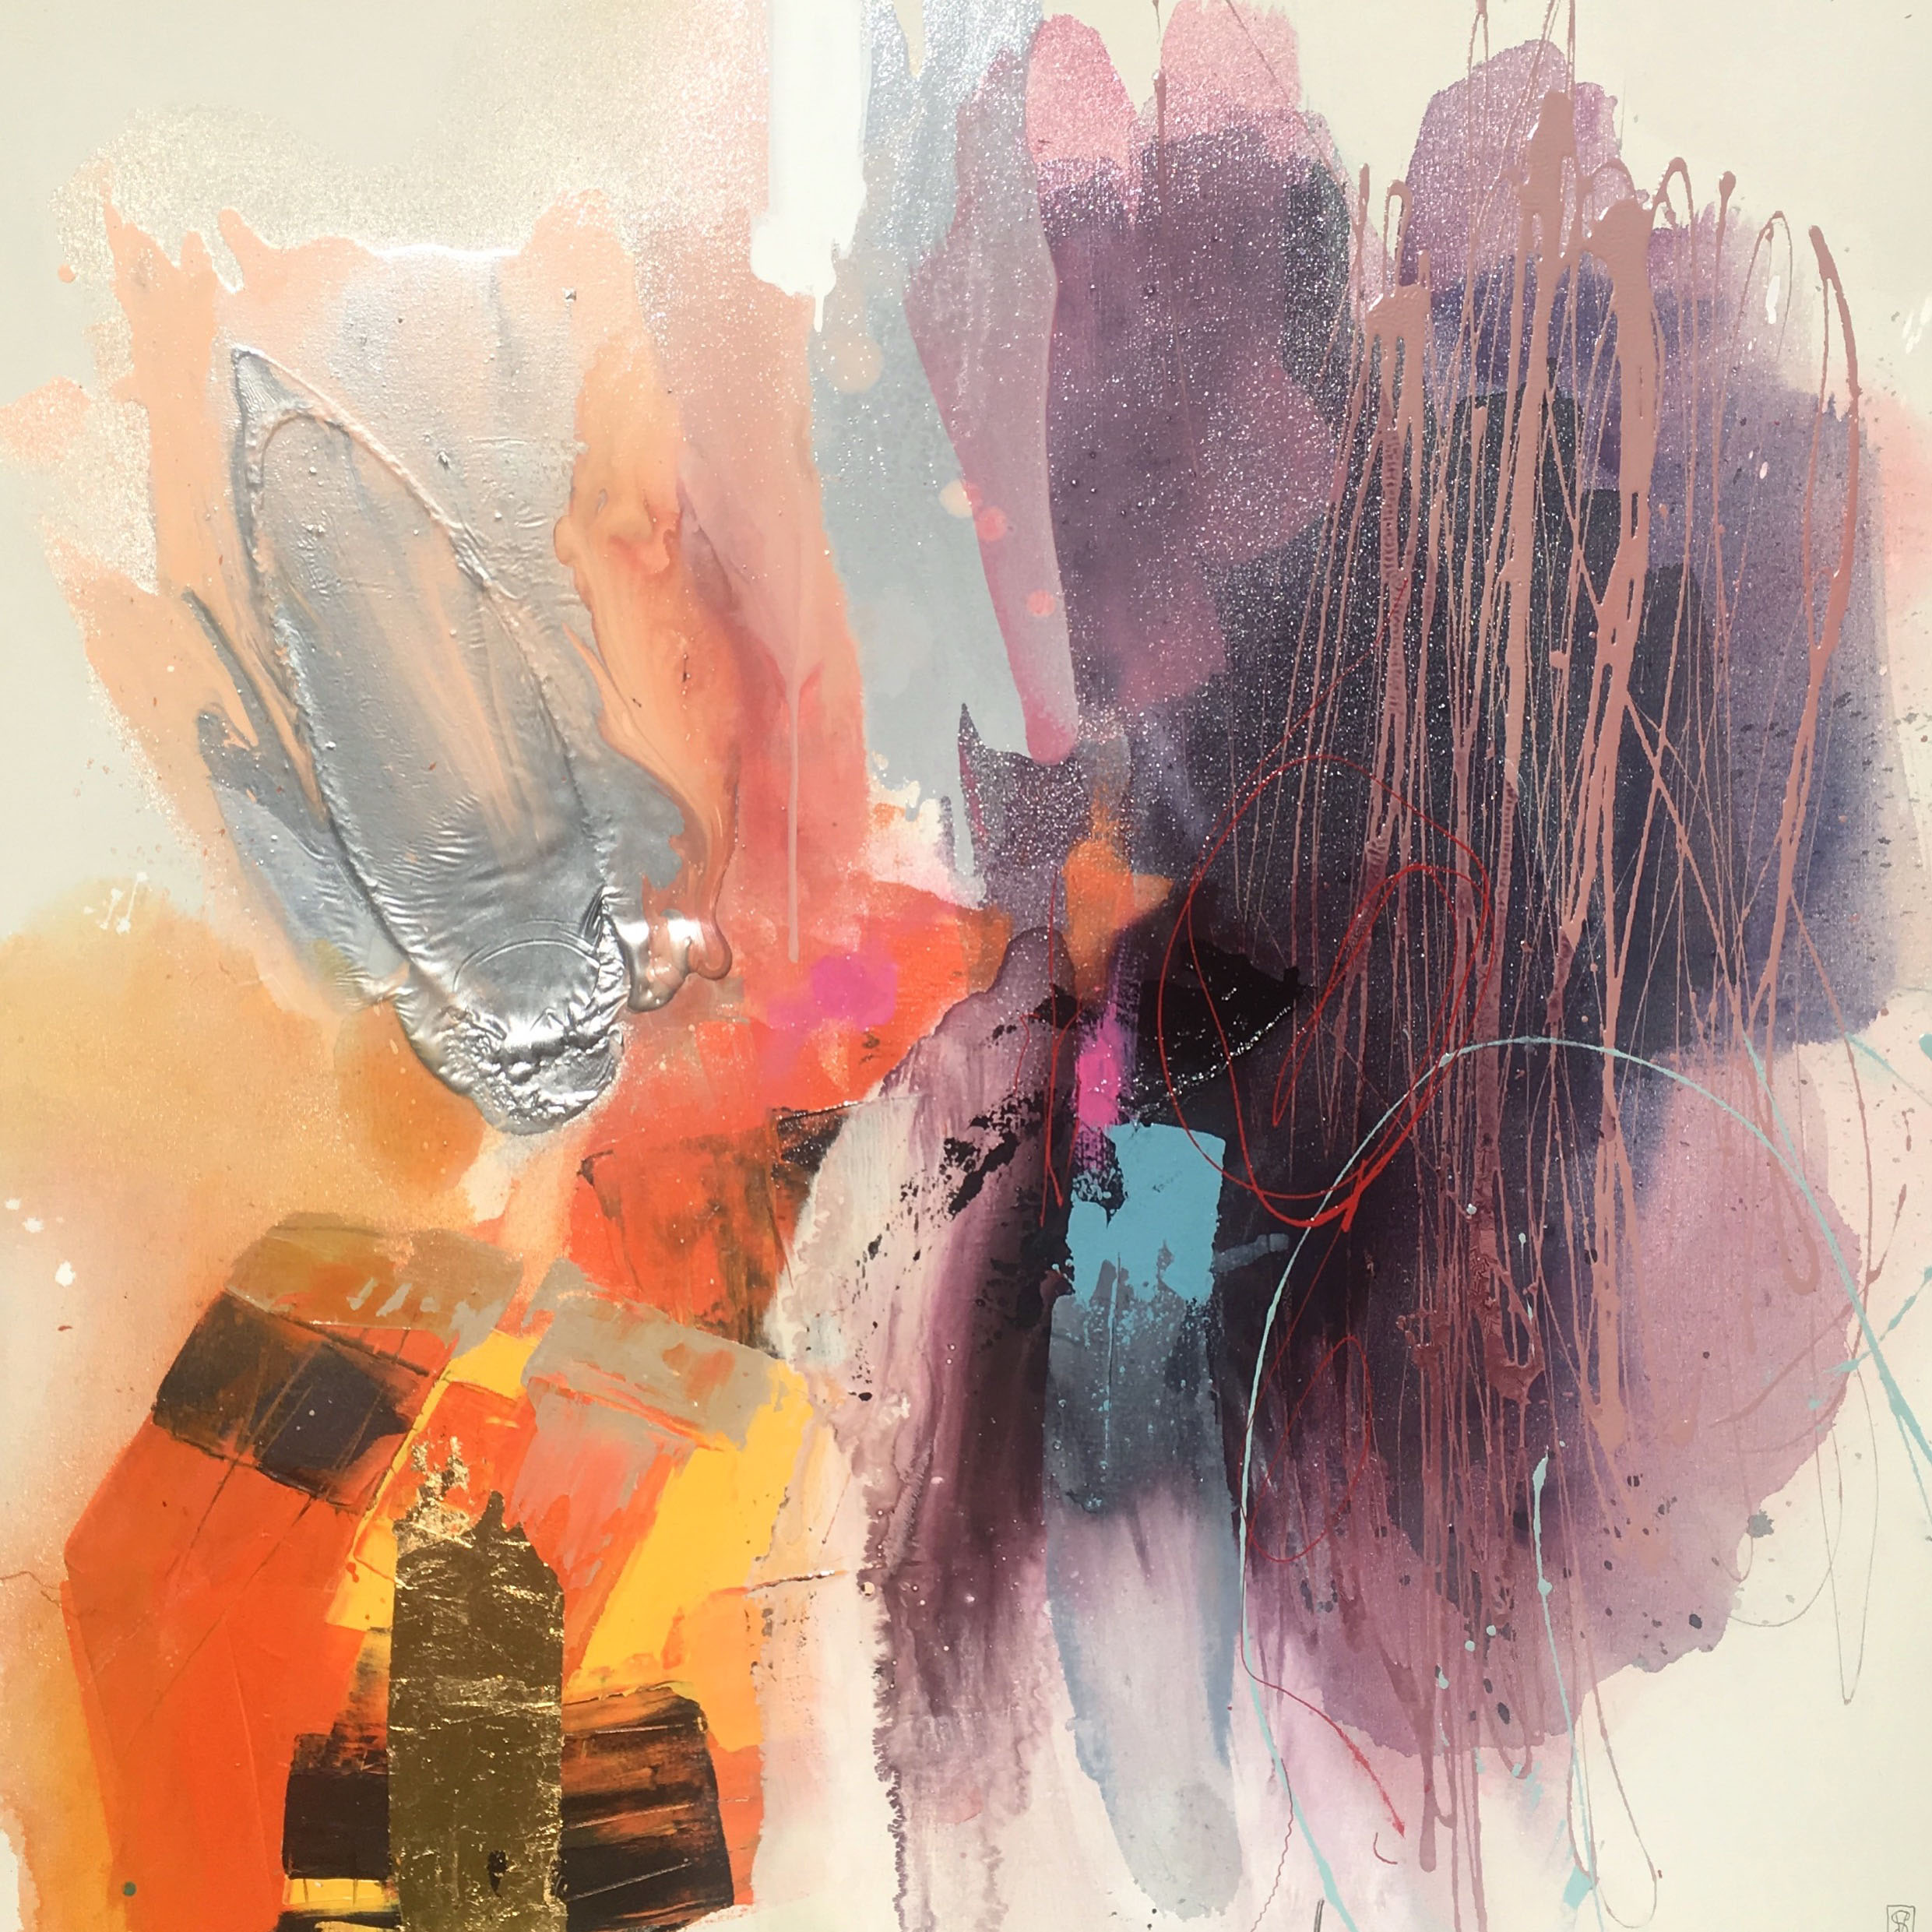 Vicky Sanders Abstract - Candy Floss